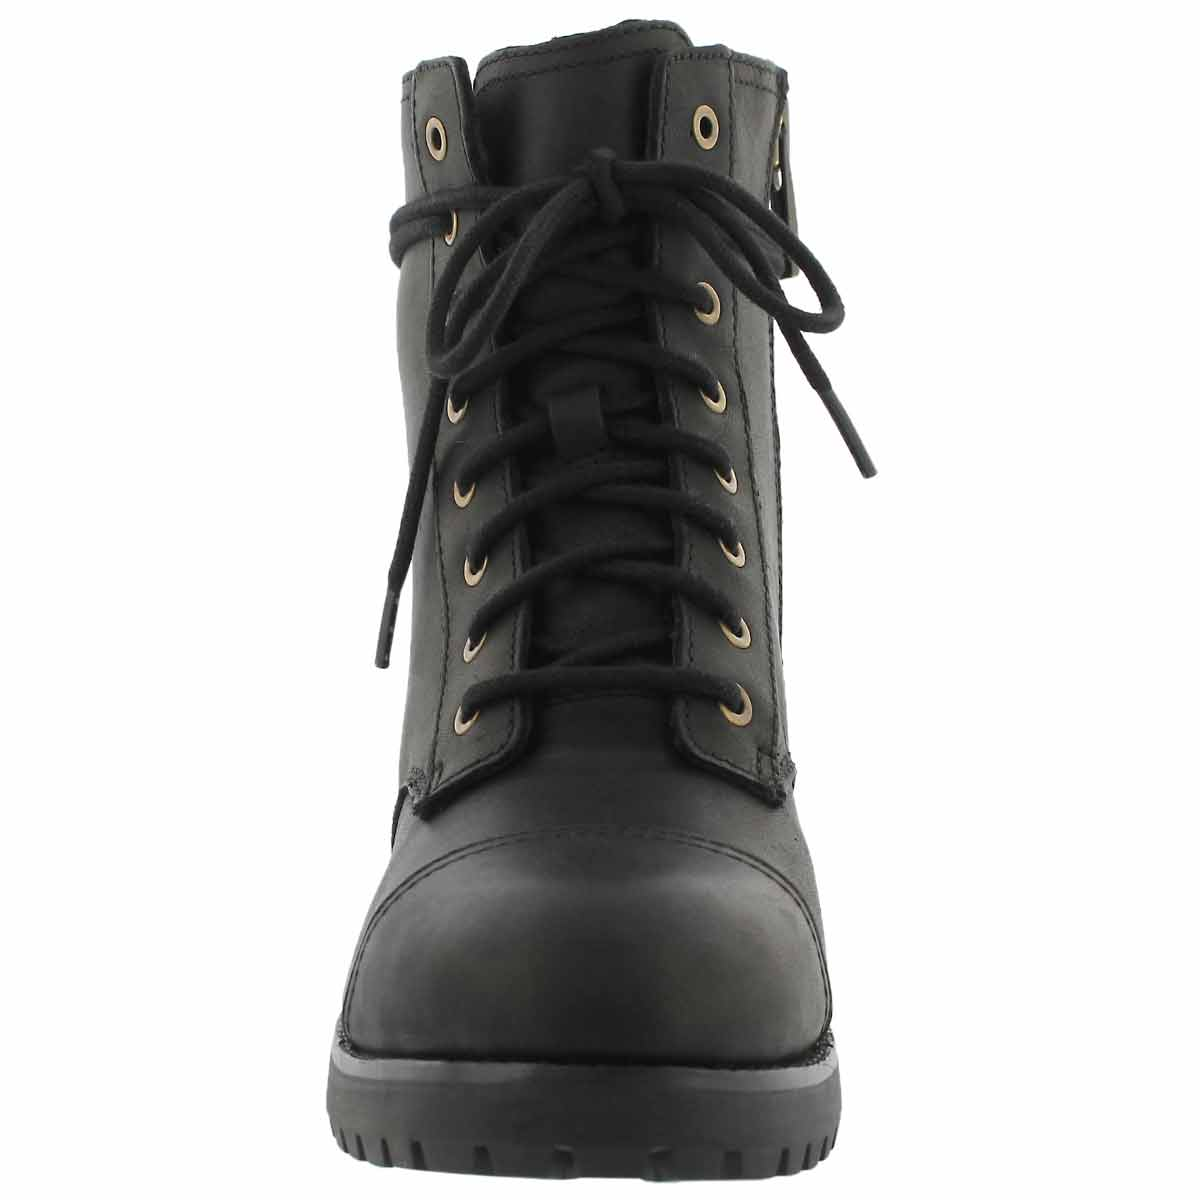 Lds Kilmer black lace up combat boot